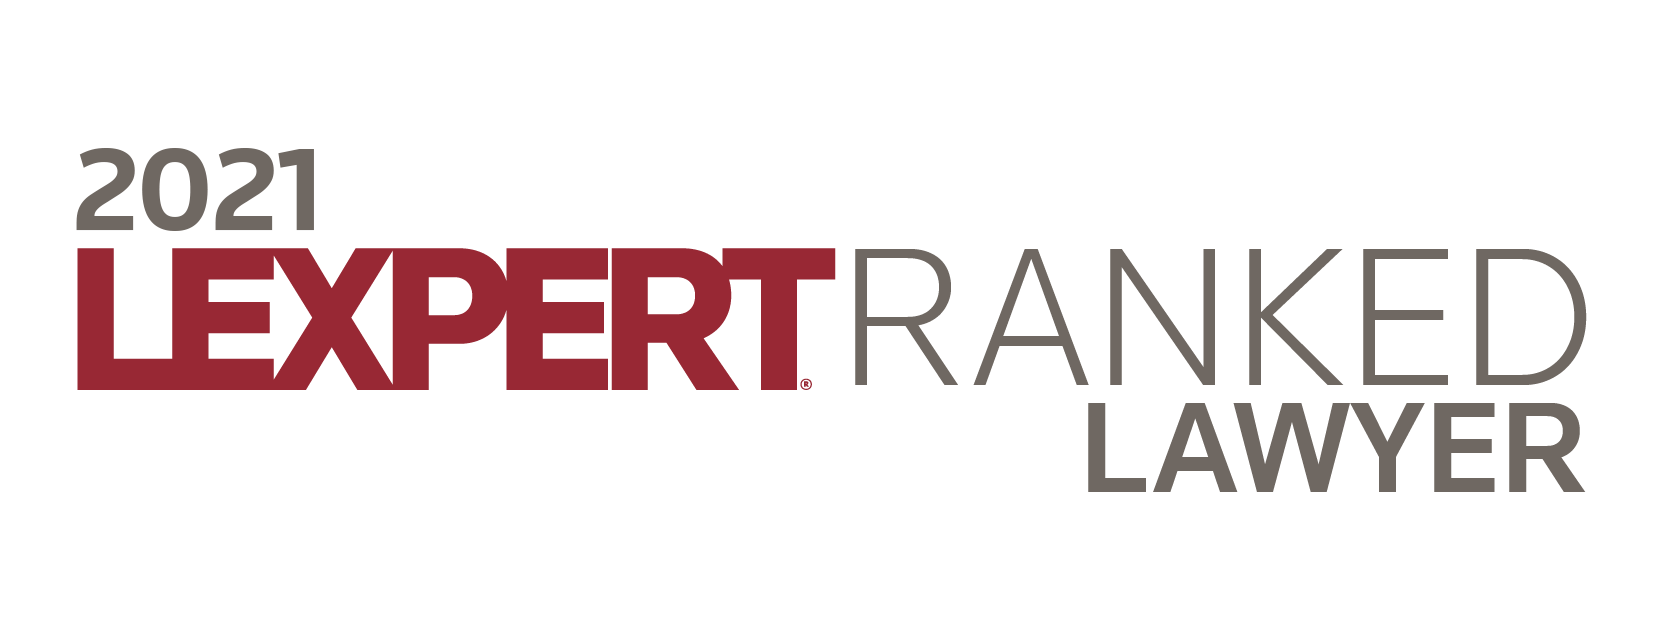 Lexpert-ranked Lawyer